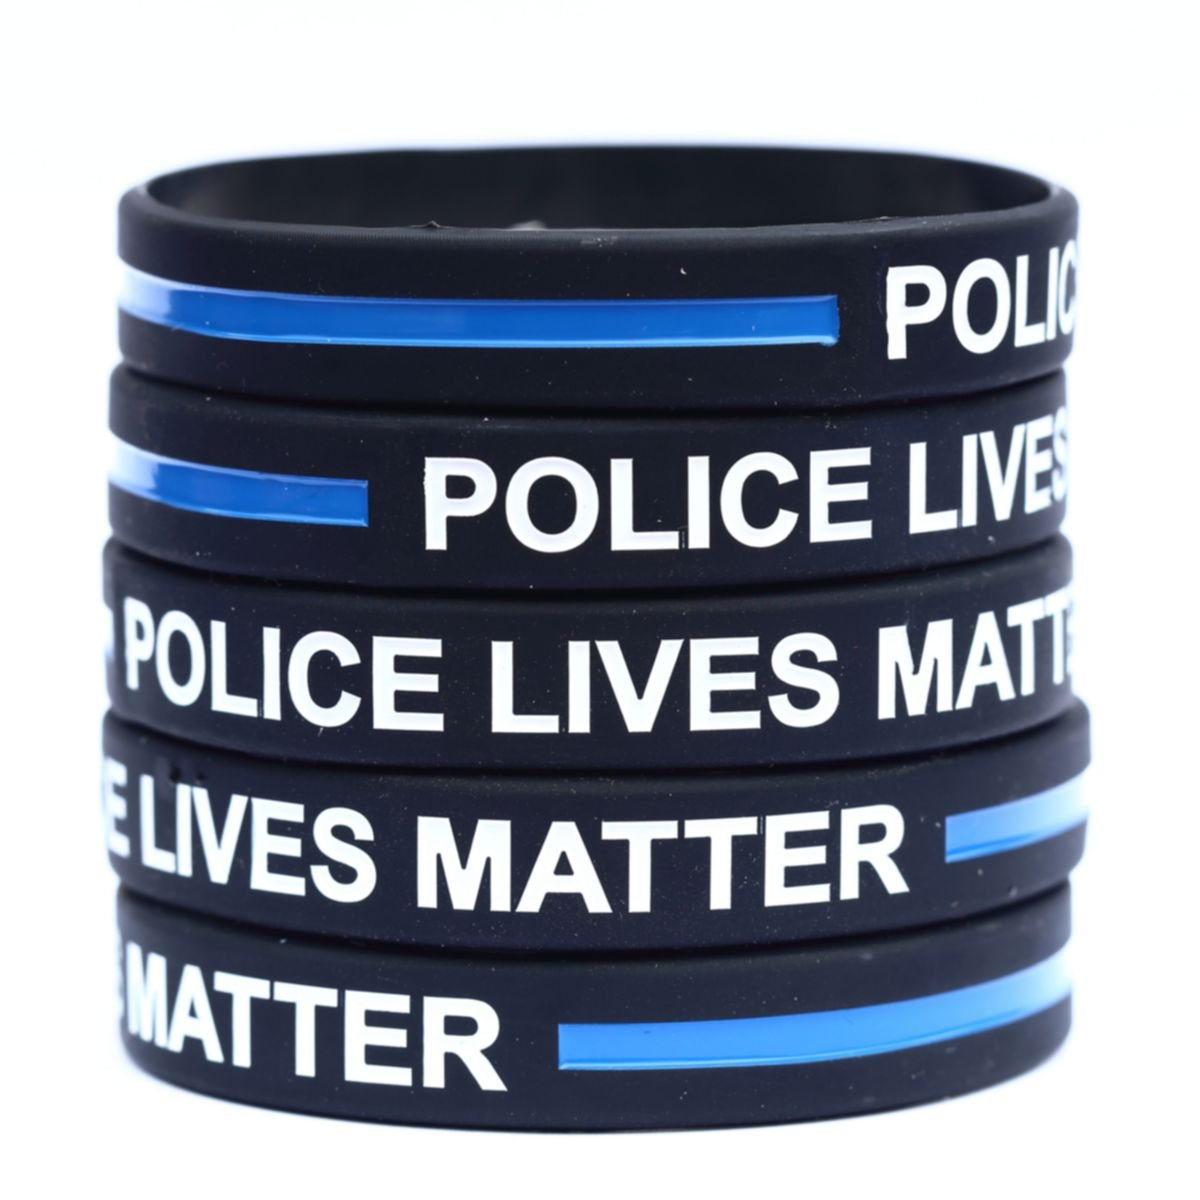 100 Police Lives Matter Thin Blue Line Silicone Wristbands in Support Memory Police Officer